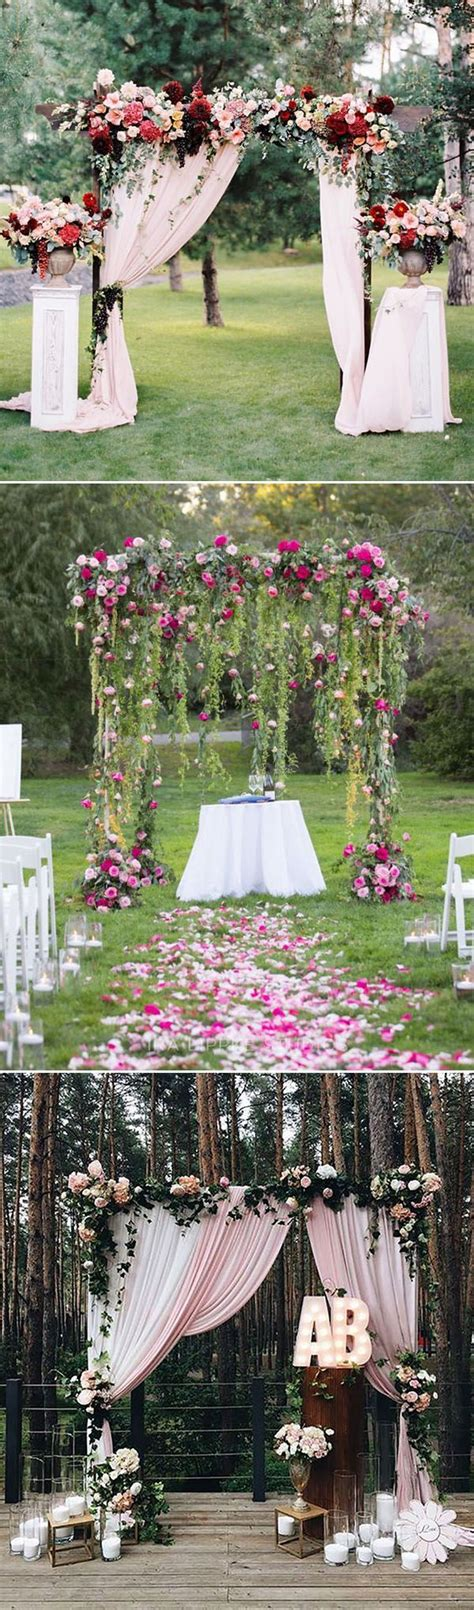 OutDoor Decorative : stunning outdoor floral and fabric wedding altar and arch ideas